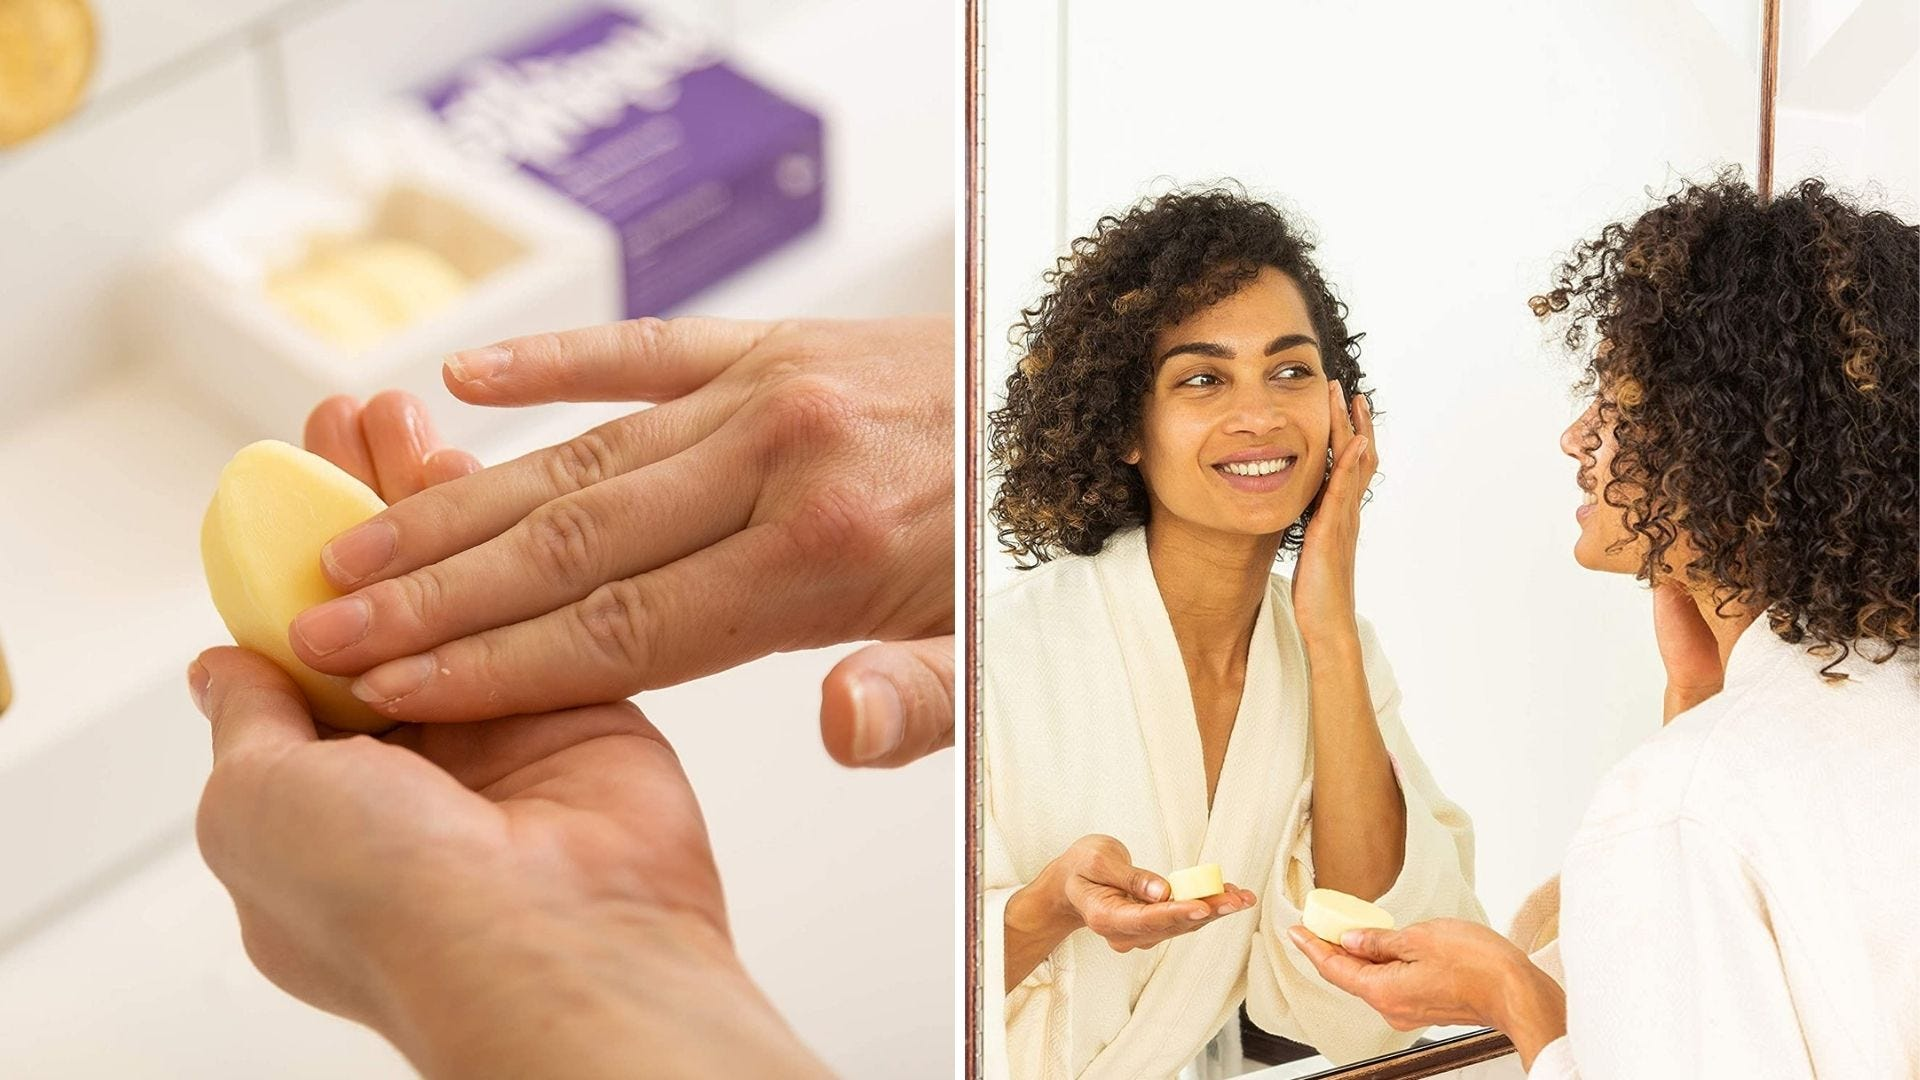 Someone holds an oval shaped bar in their hand and a woman rubs a face lotion bar on her face